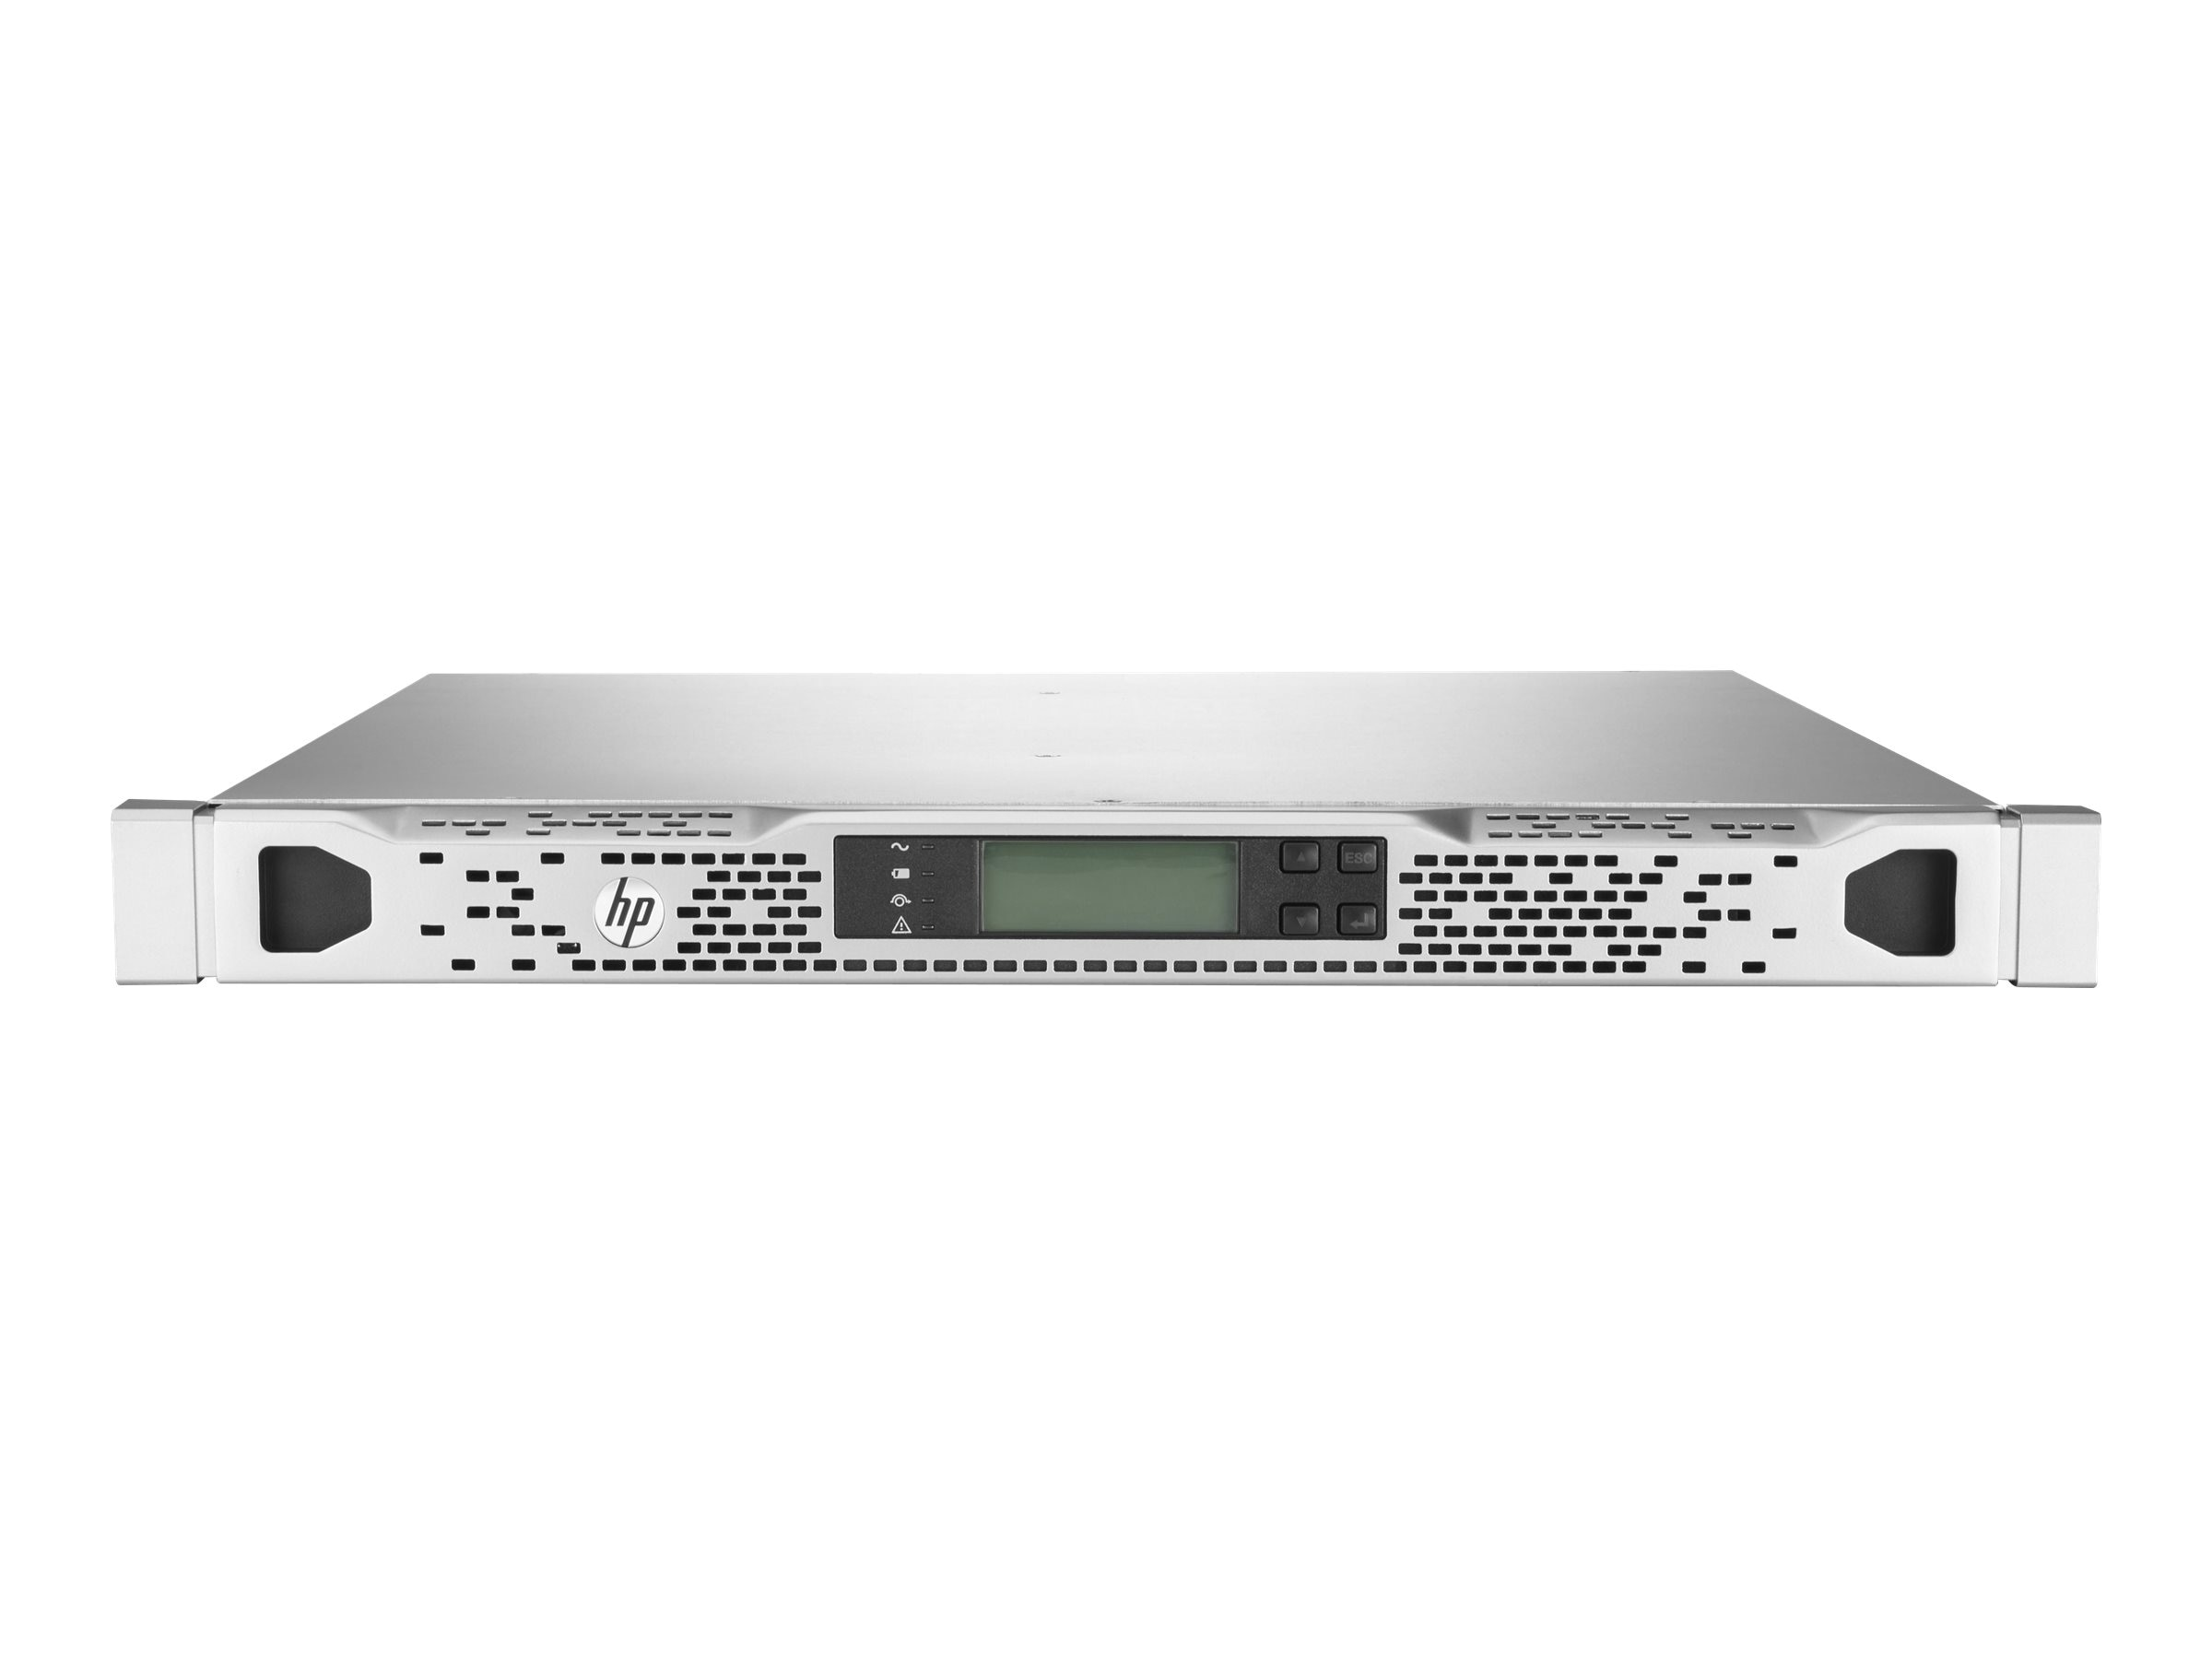 Hewlett Packard Enterprise G9Y75A Image 1